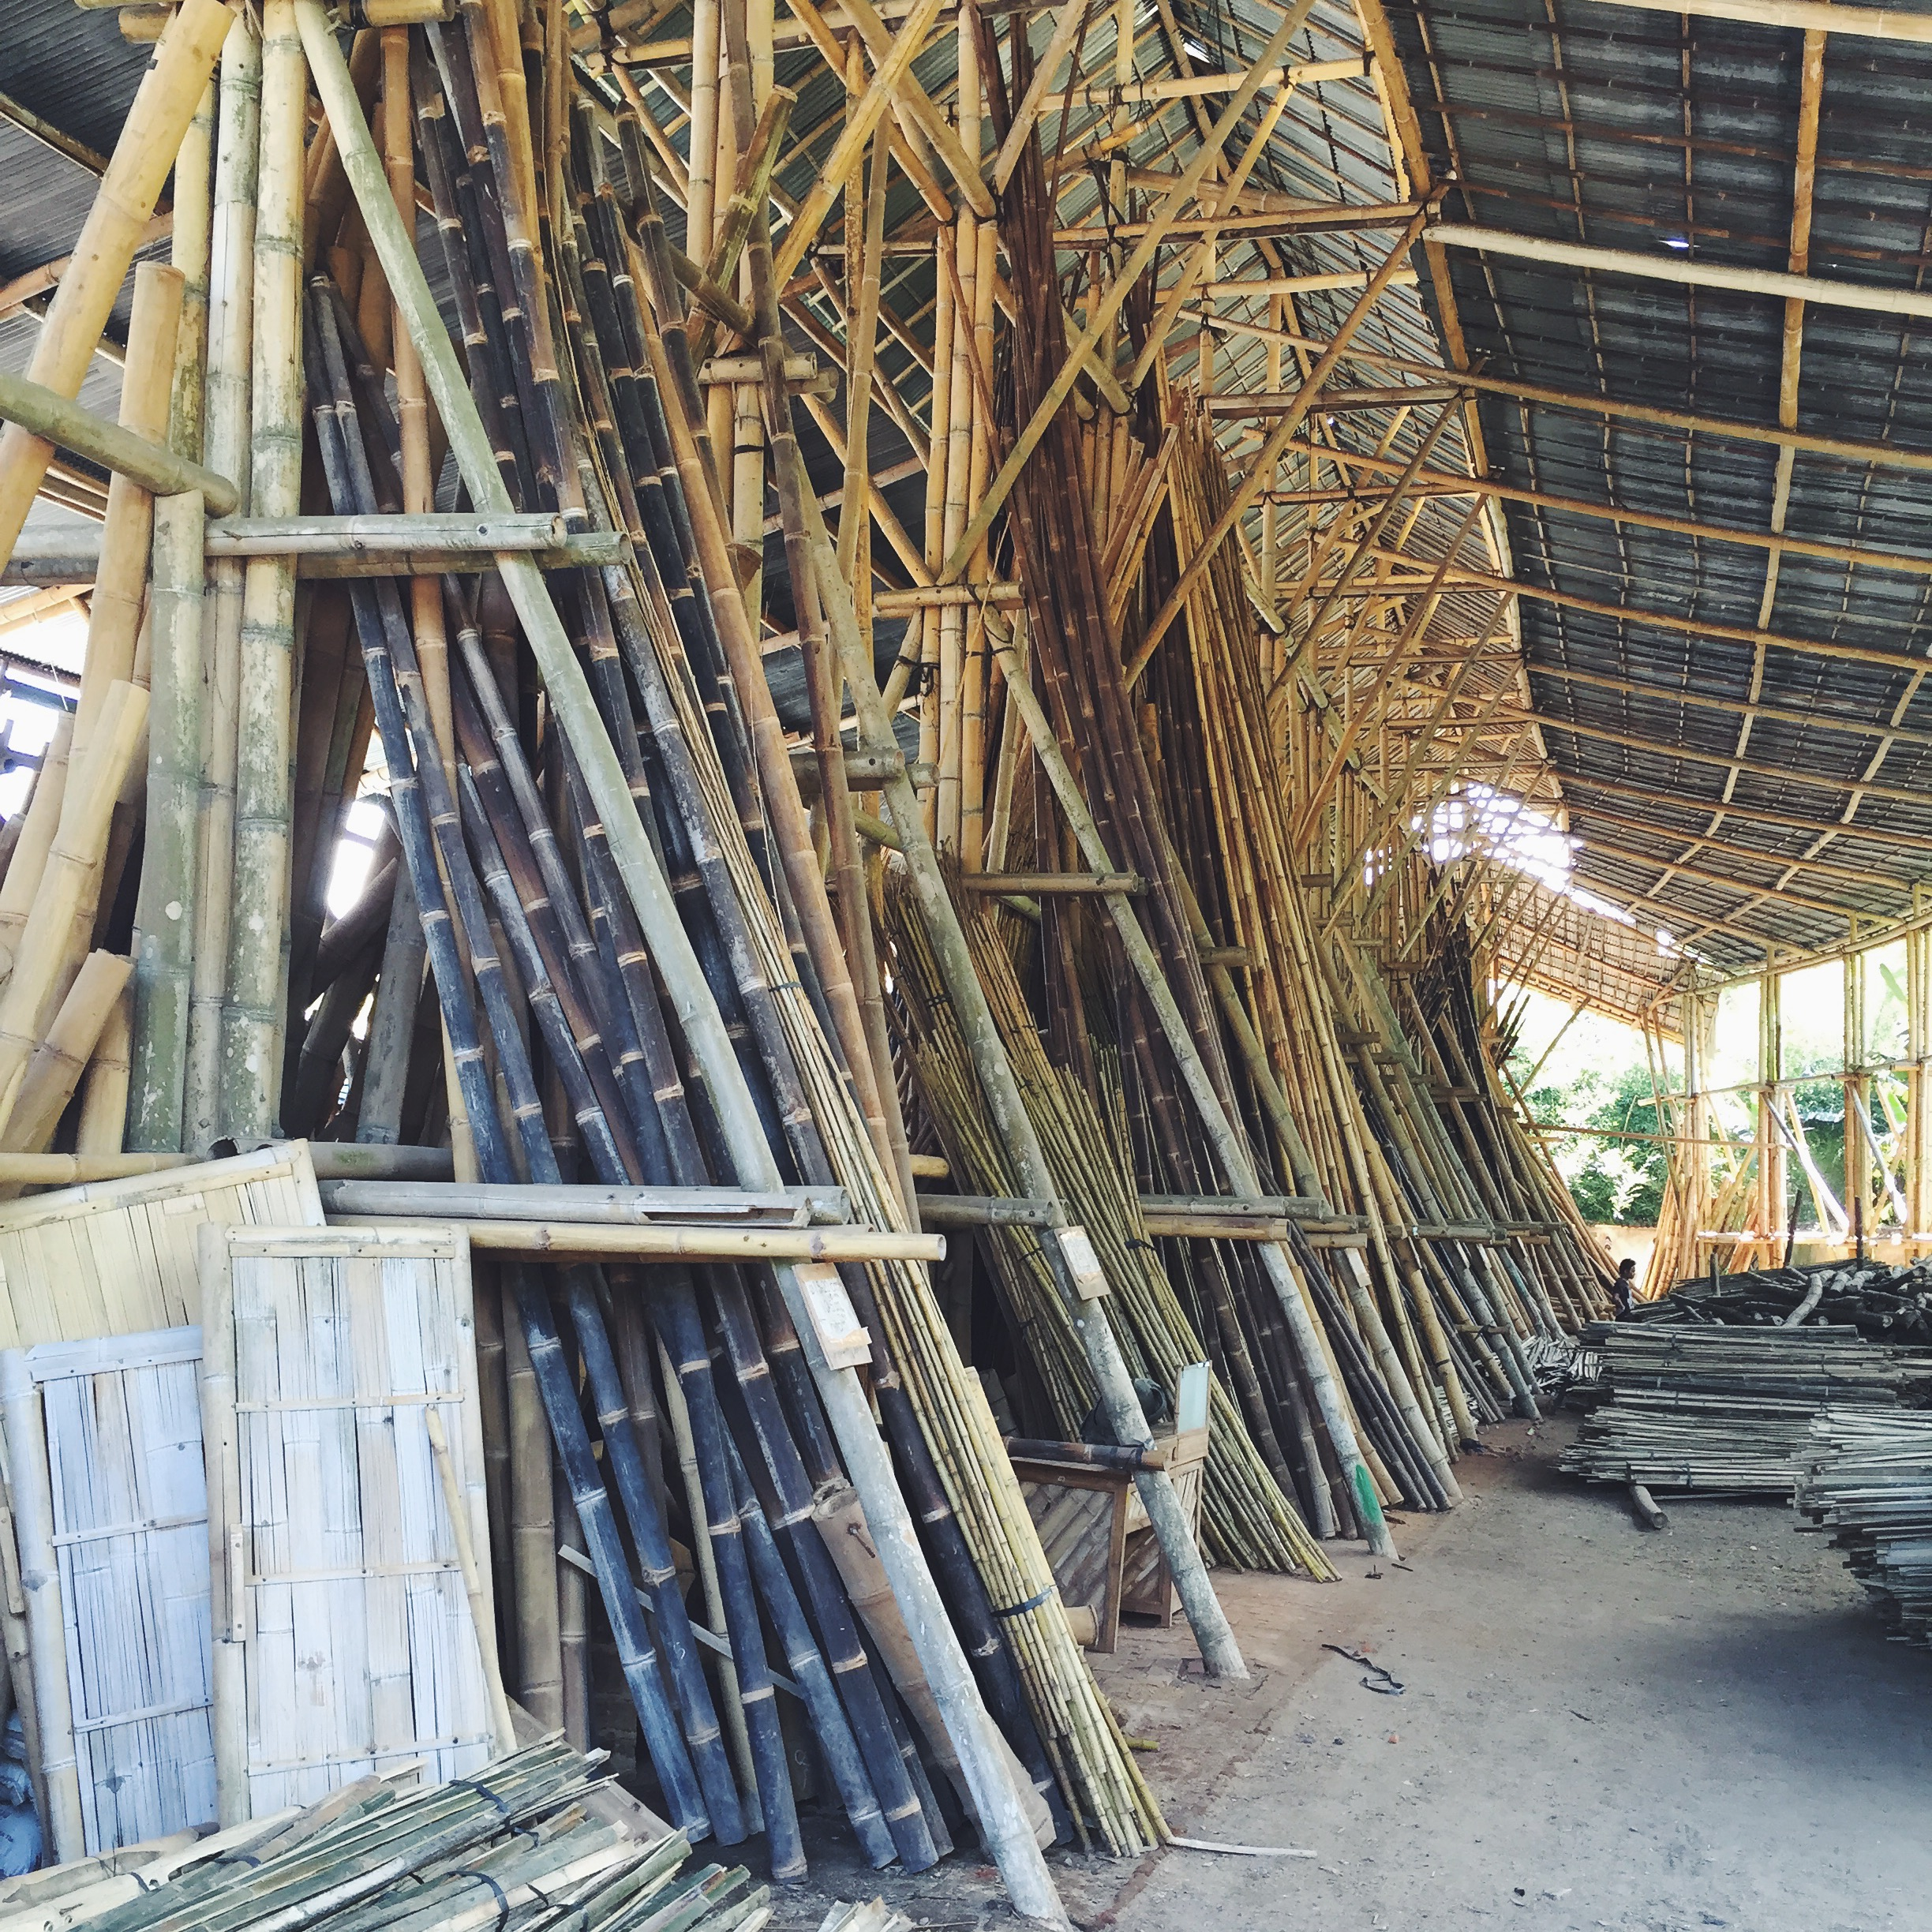 This is  PT Bamboo , the factory that makes bamboo houses and furniture that ship all over the world.